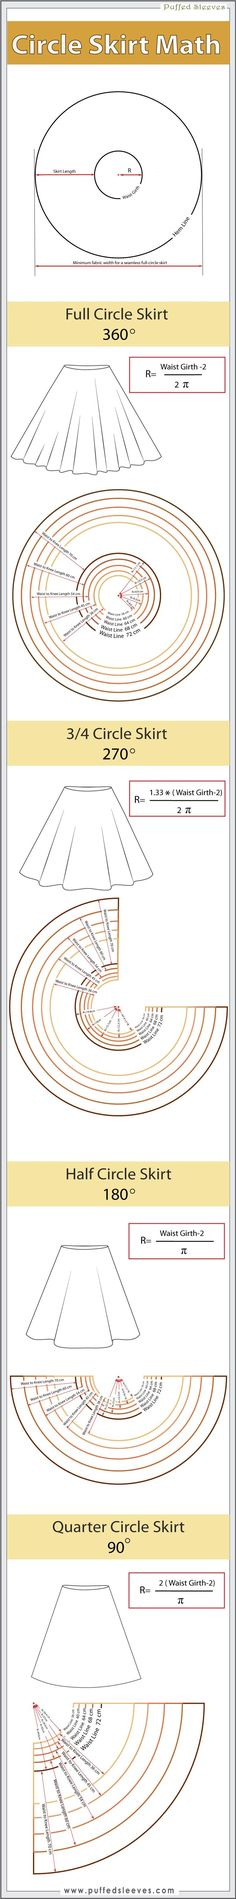 Circle skirt pattern basics